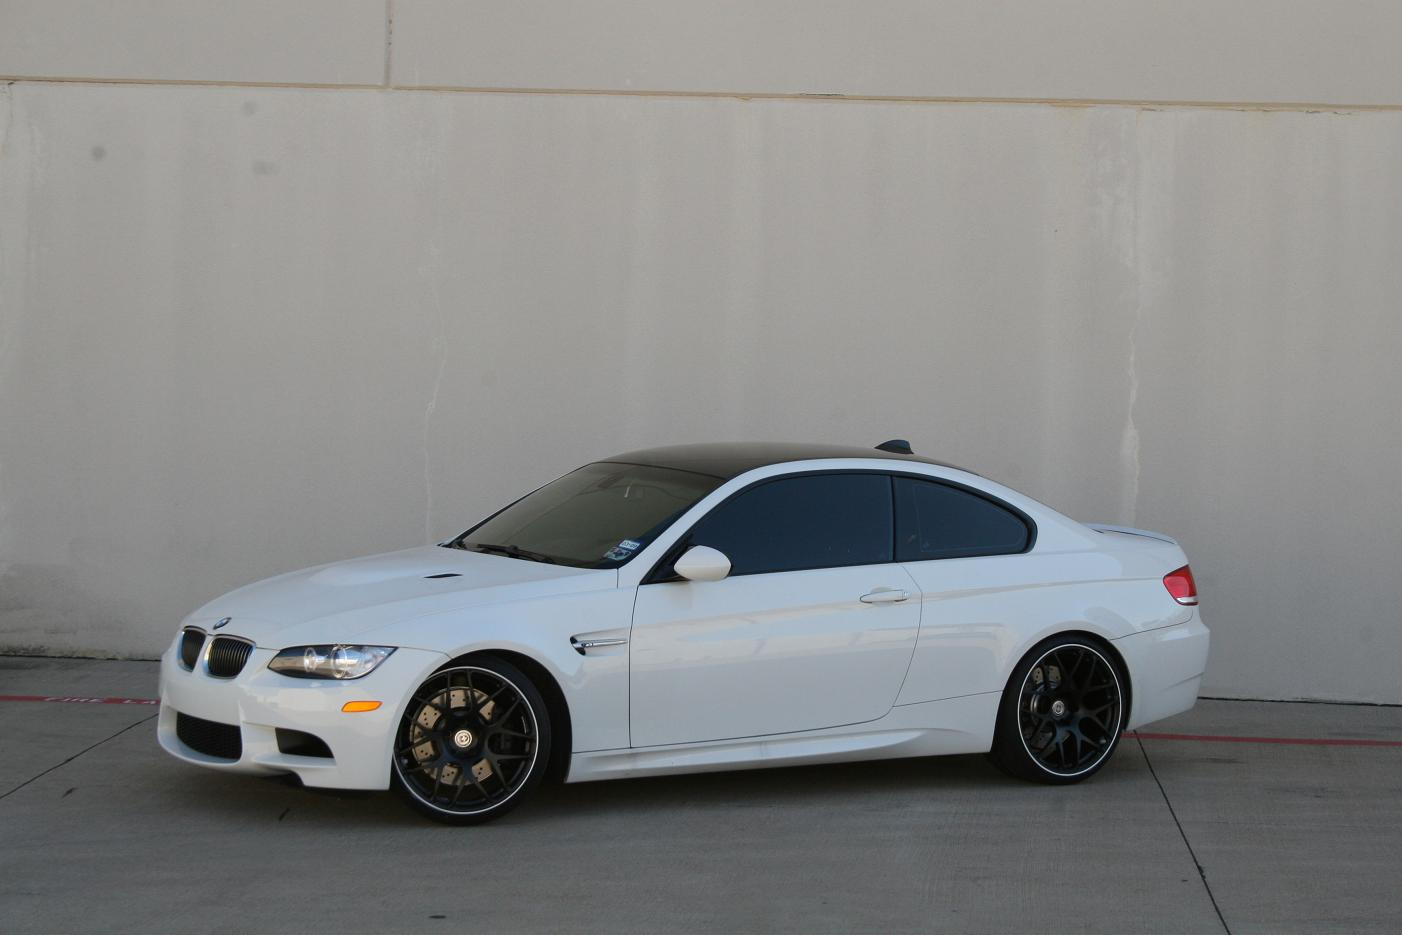 20 Quot Hre P40 Matte Black With Aw Pinstripe On Aw E92 M3